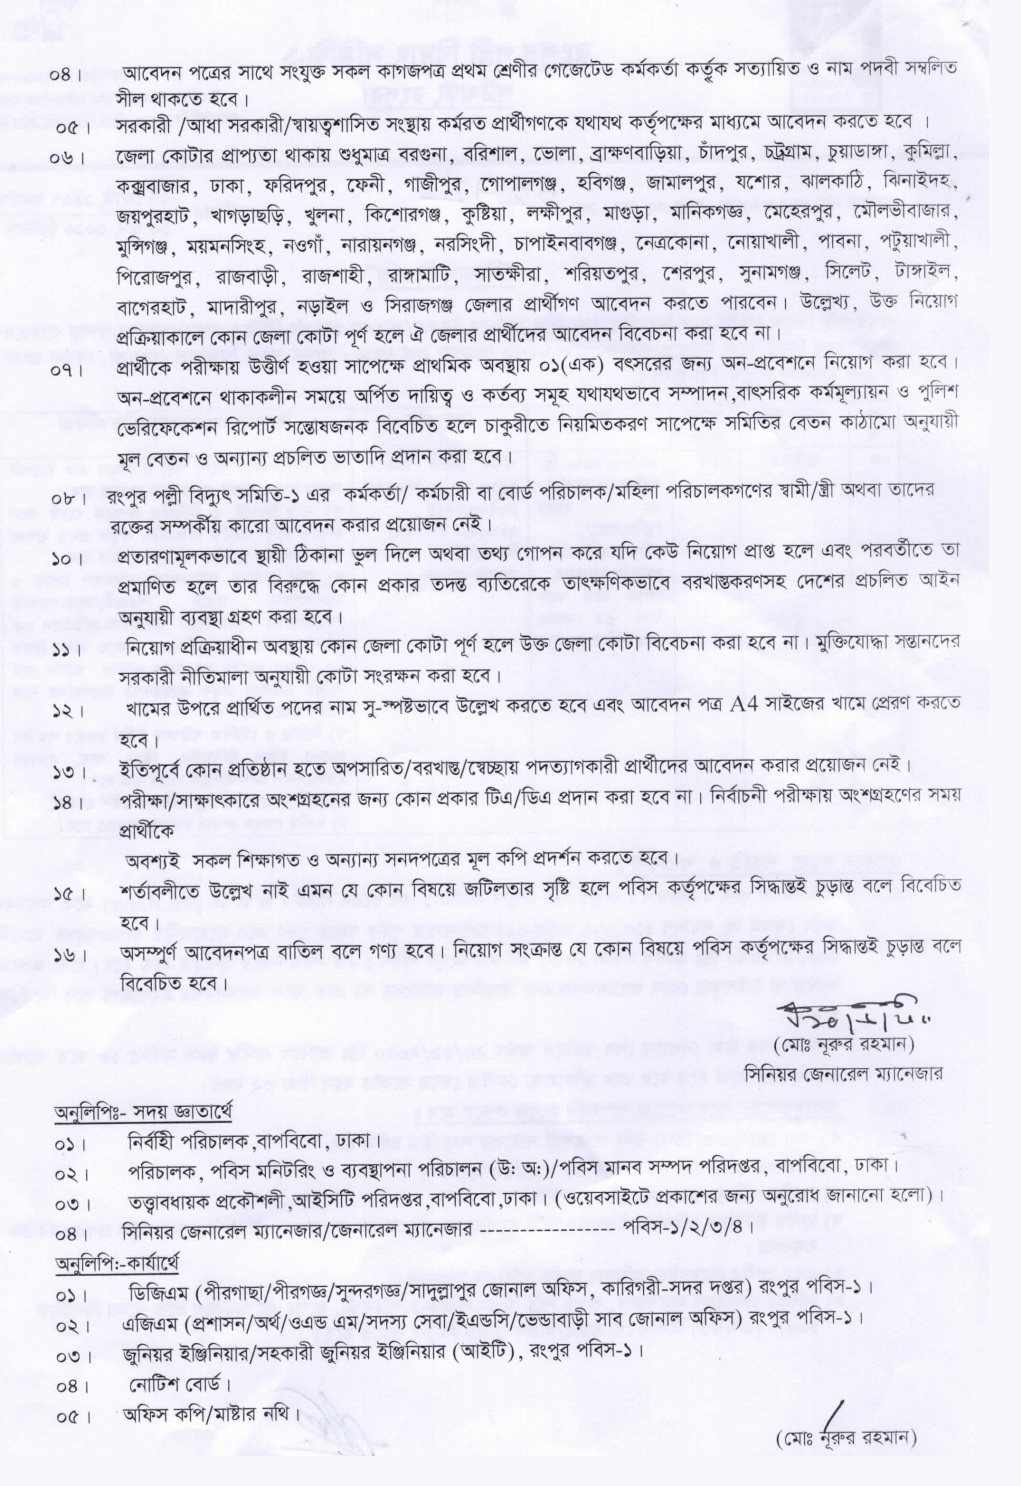 Bangladesh Rural Electrification Board Job Circular 2020